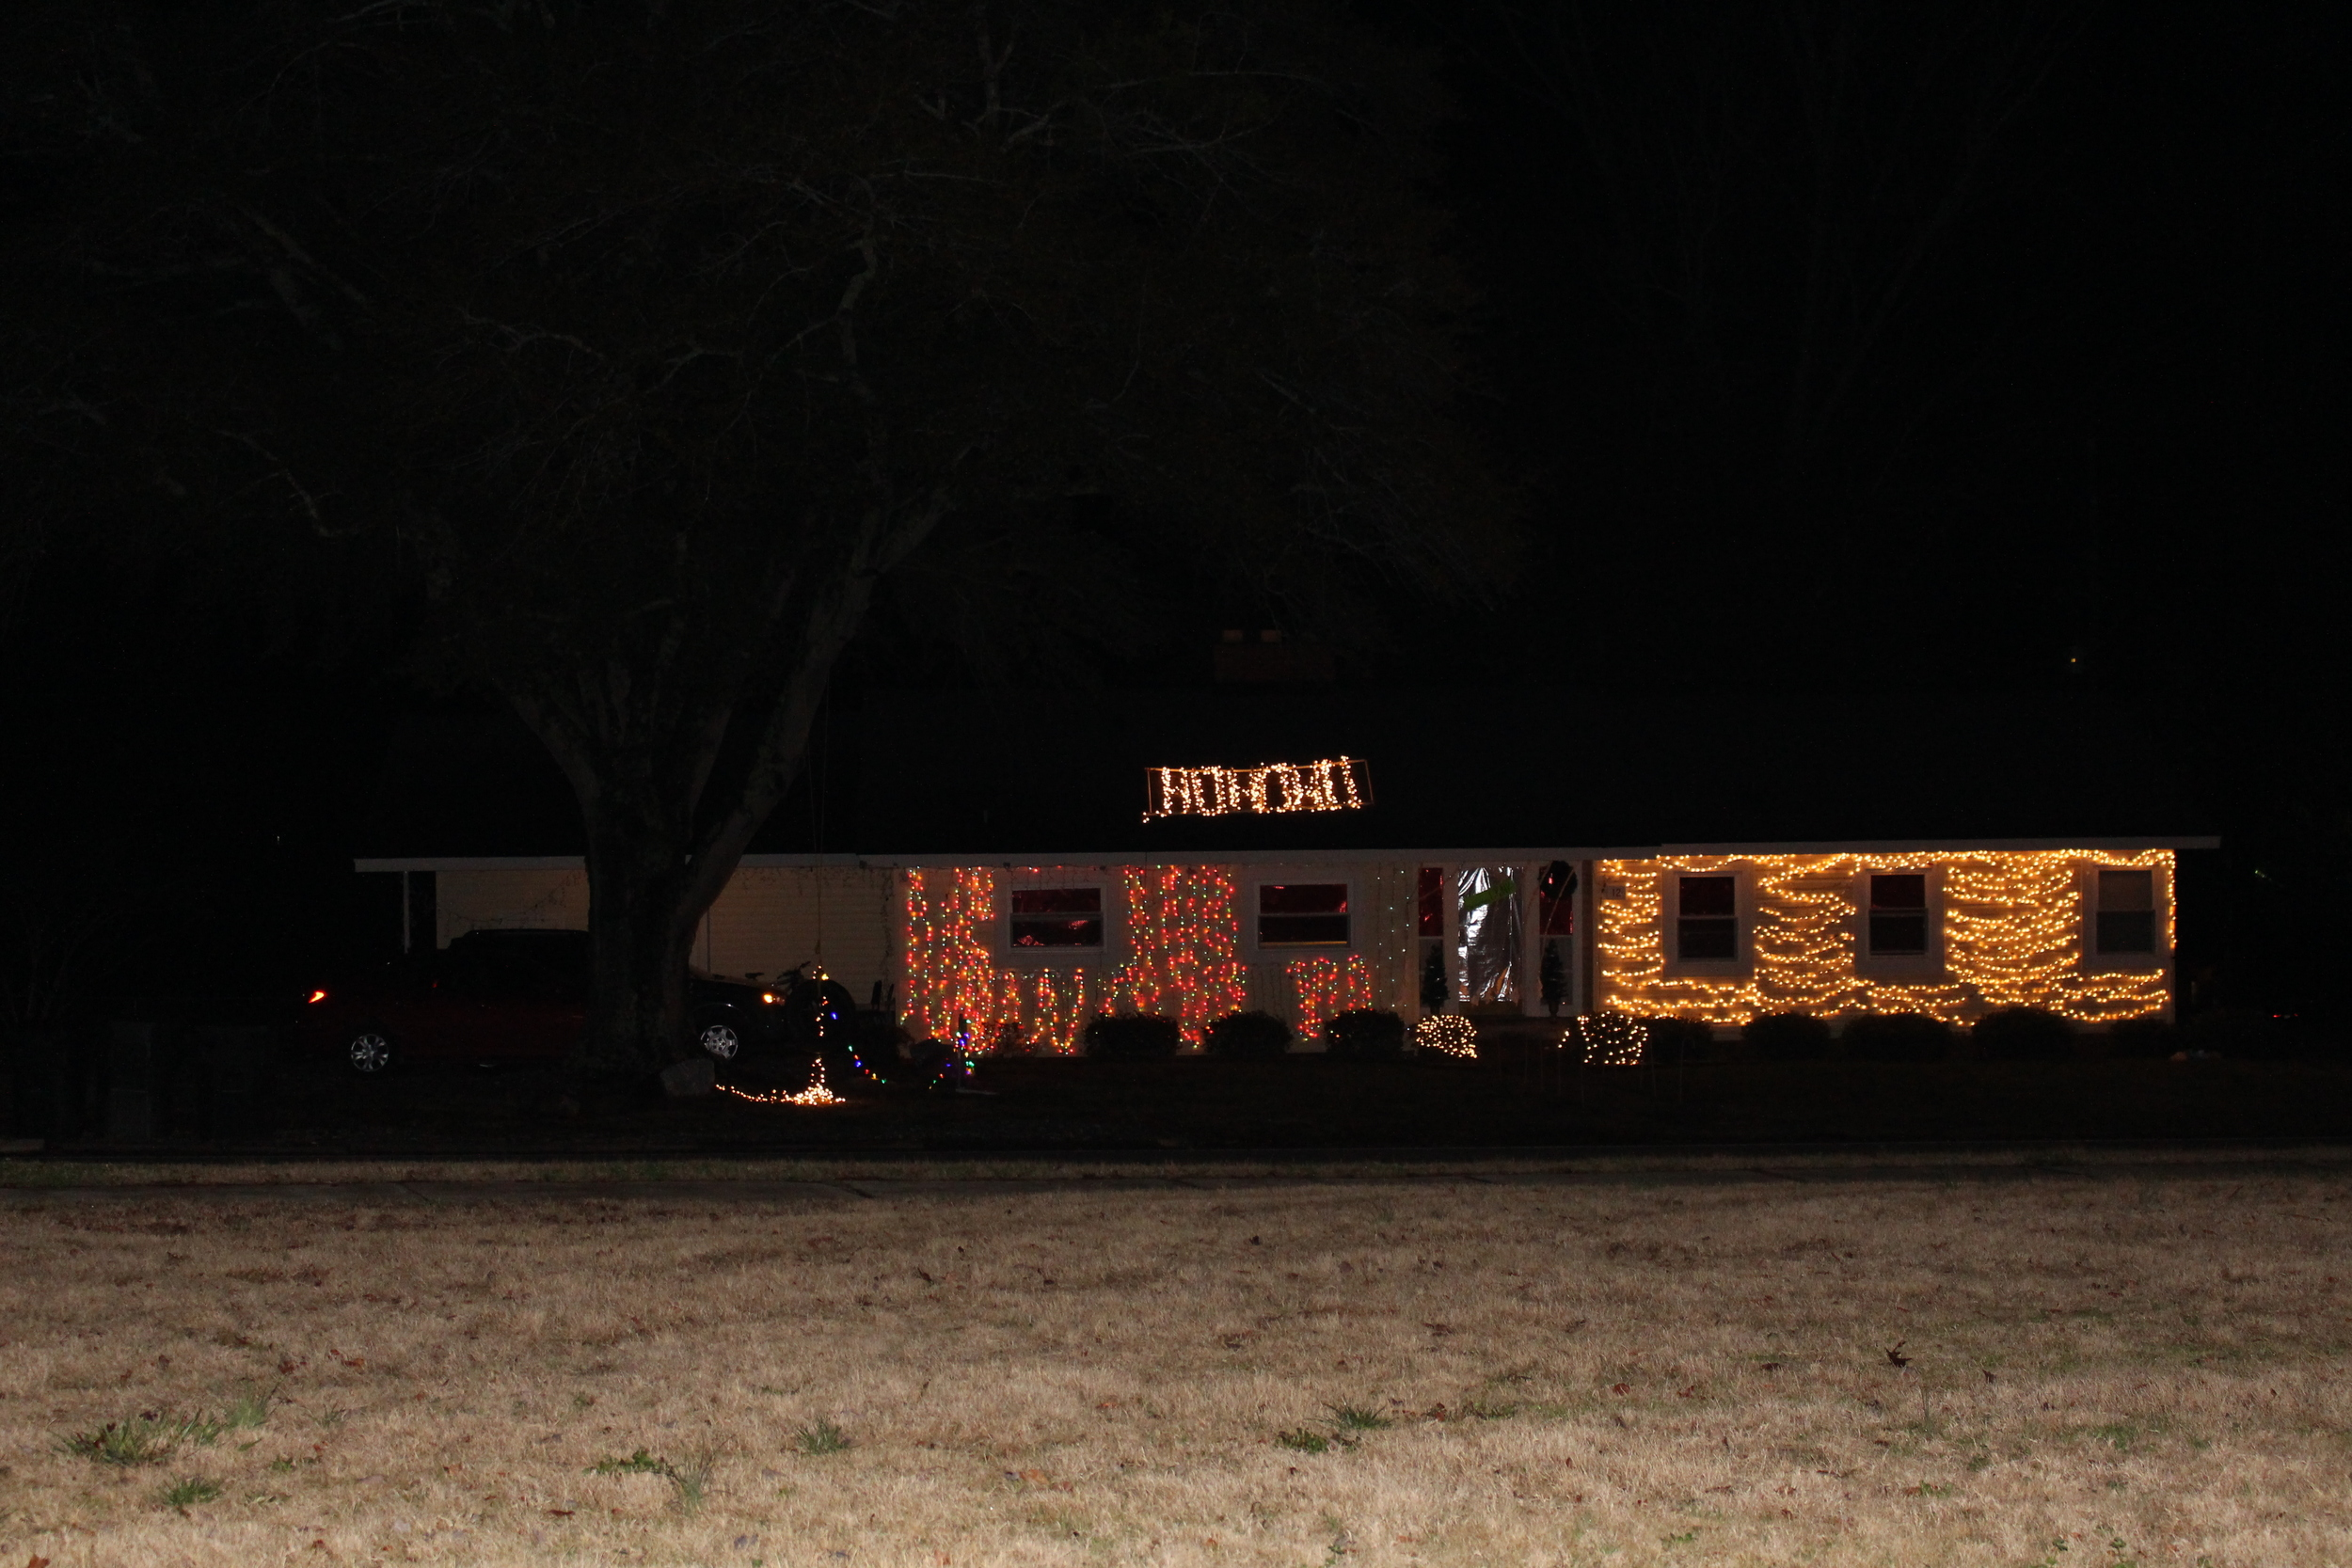 Chinquapin 12 decorated their house to display their Christmas cheer.